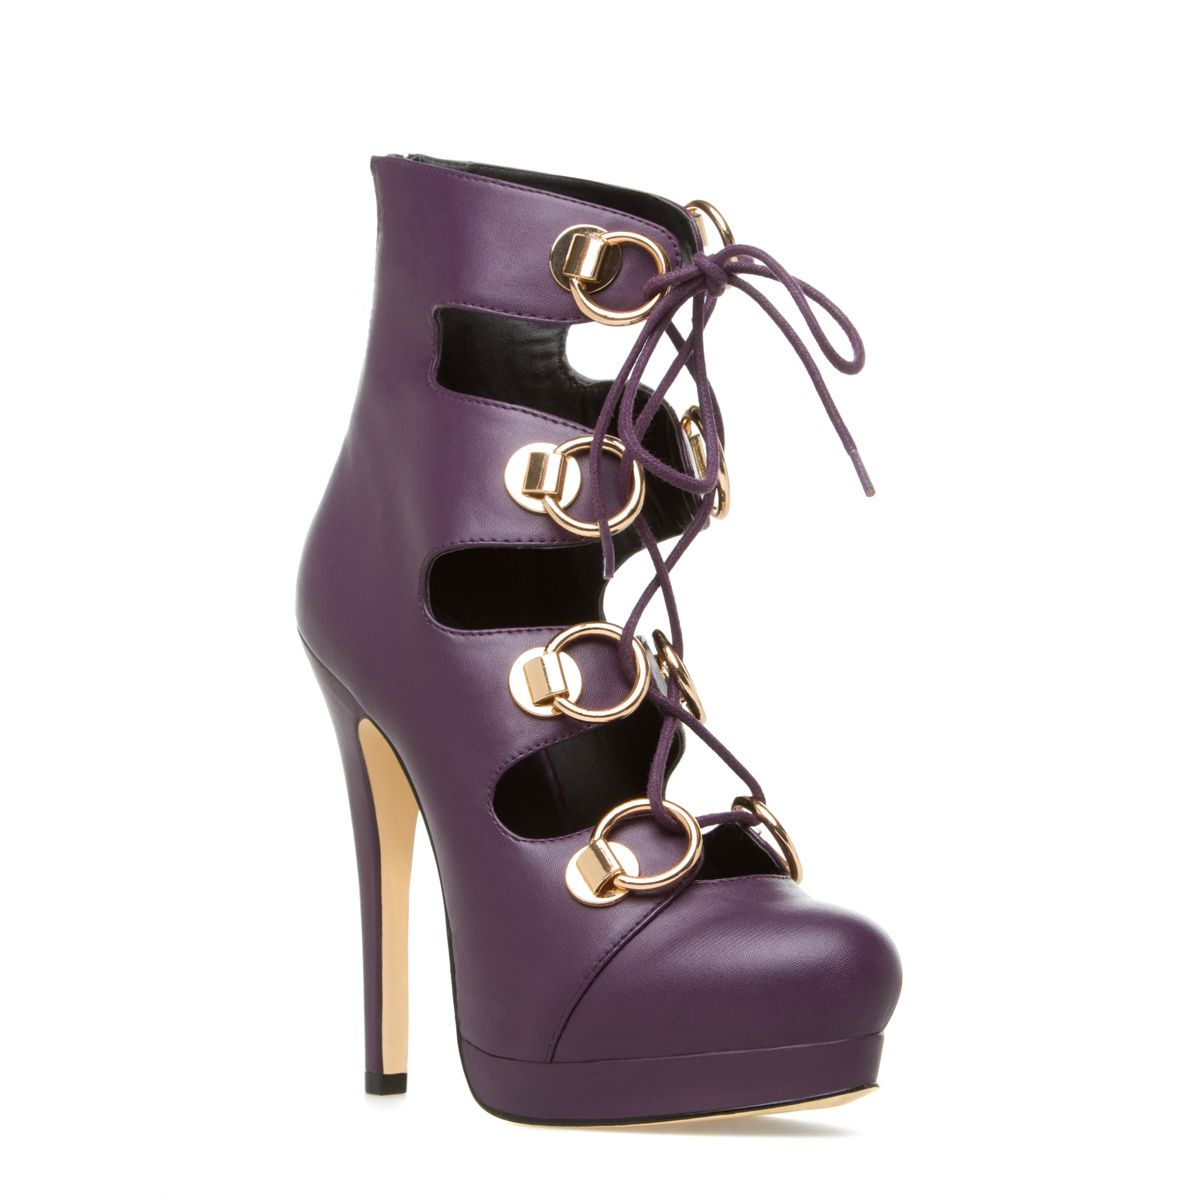 Maclaren - ShoeDazzle - Girly silhouettes and sweet styling on these pretty purple platform pumps.